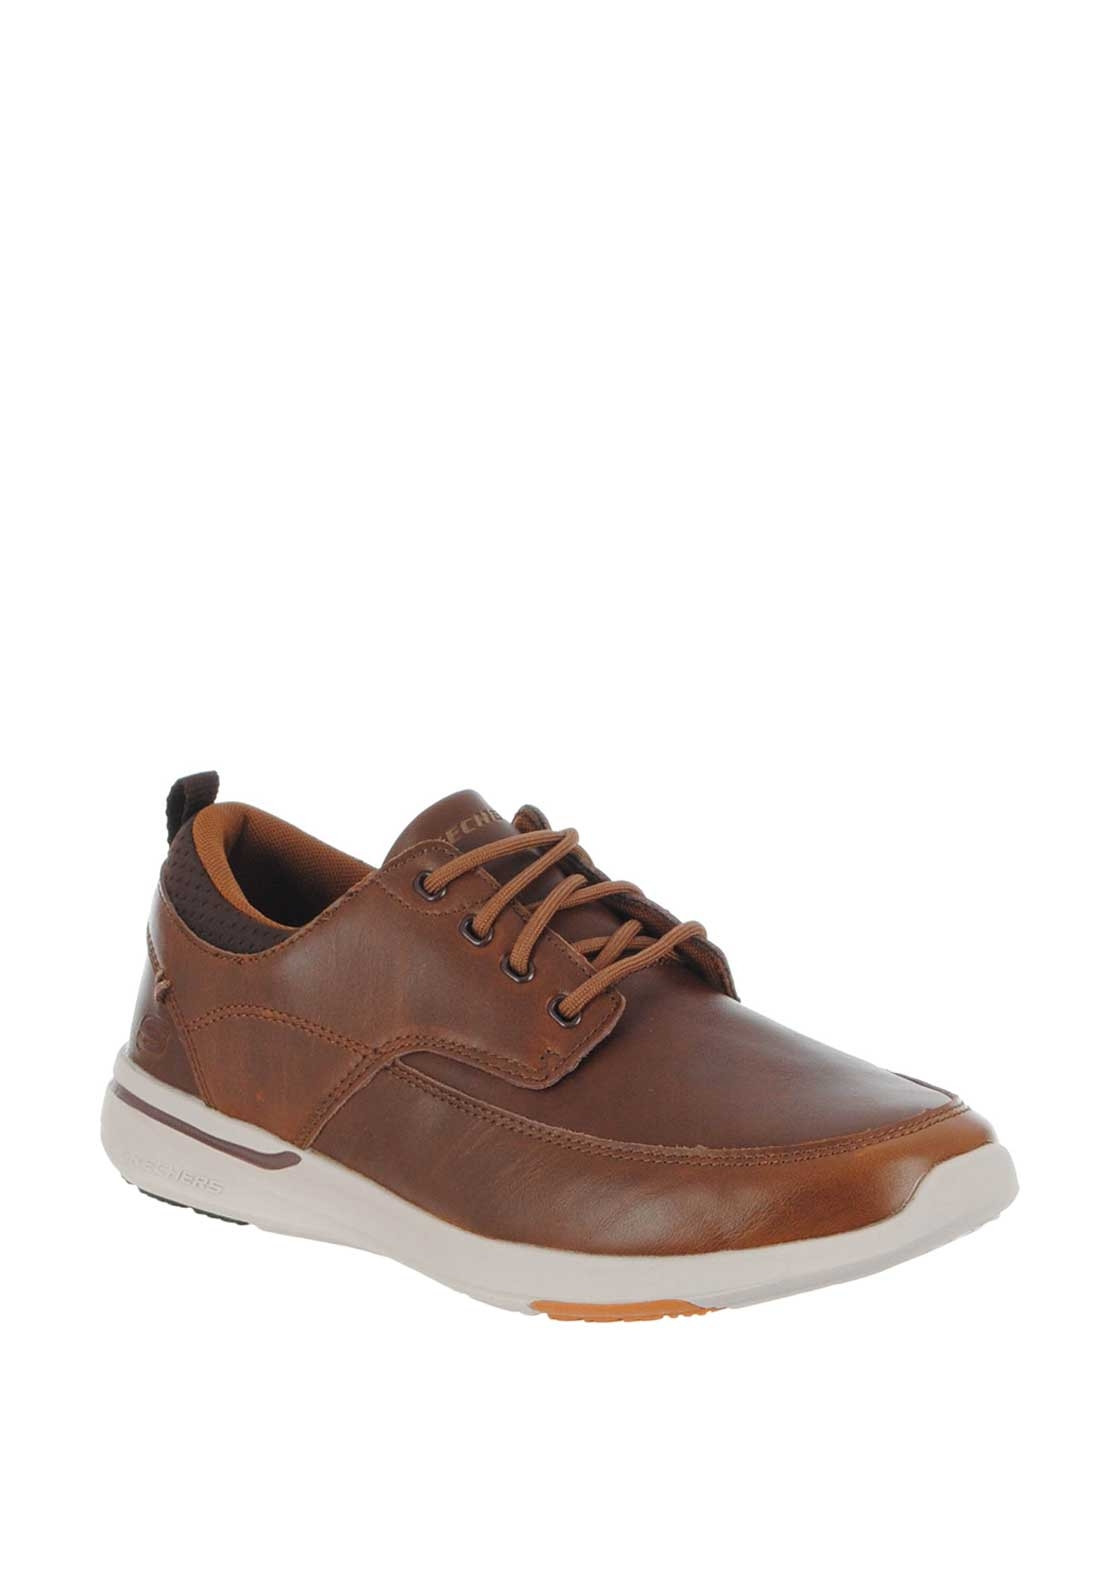 27a9d514d85 Skechers Men's Relaxed Leather Trainers, Chocolate Brown. Be the first to  review this product